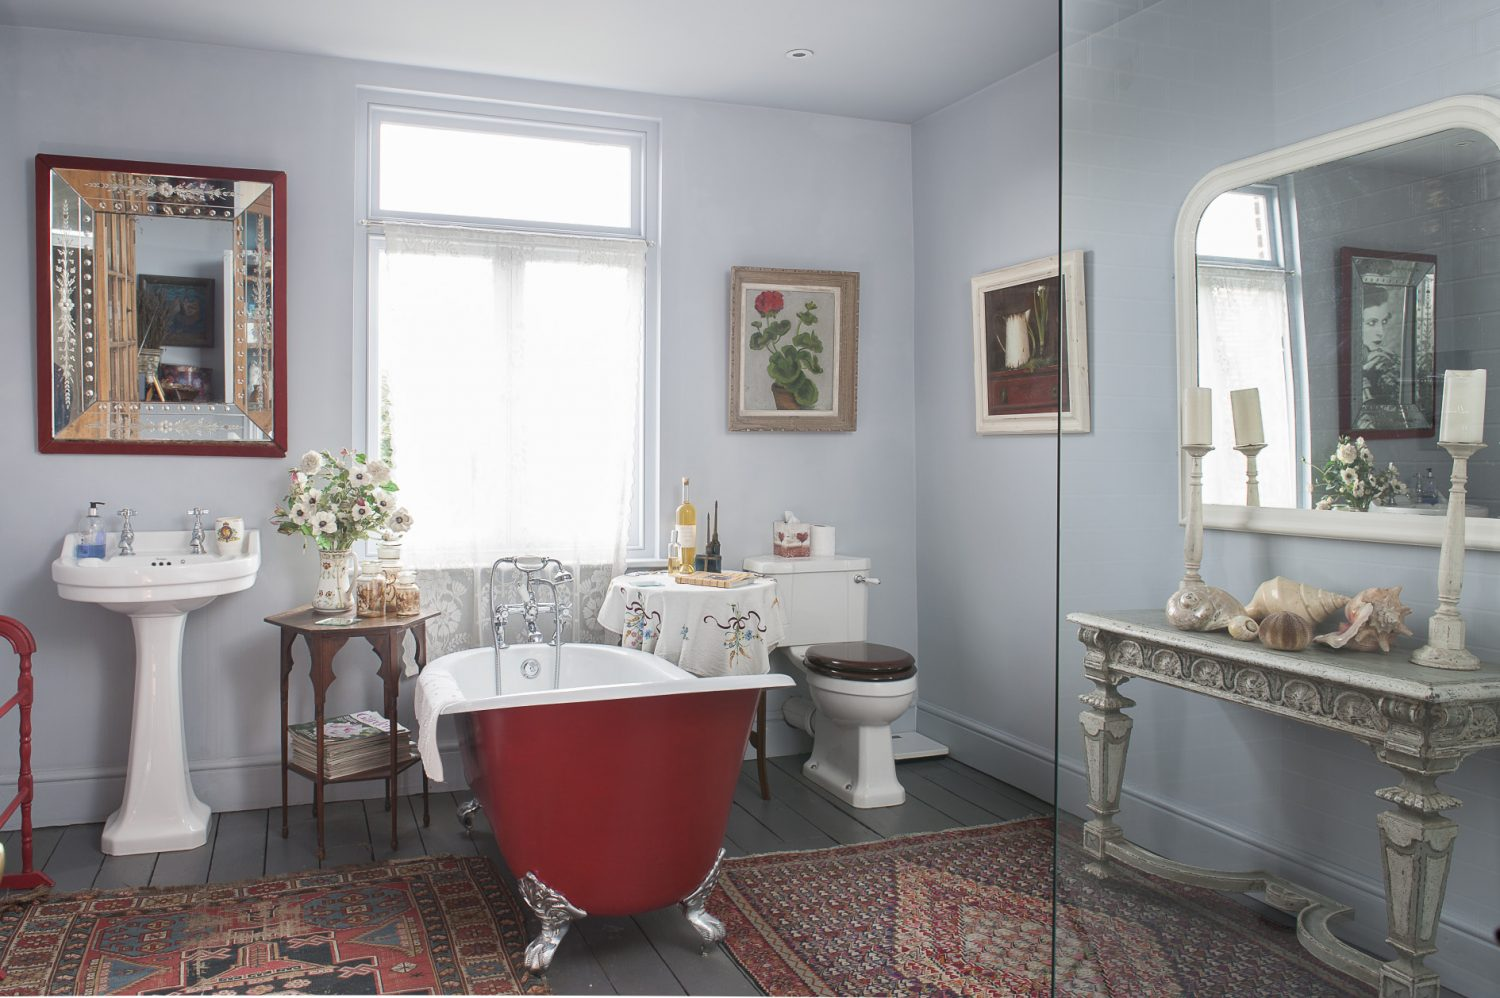 The main bathroom was not designed as a bathroom, as such, but was simply another room to which Emma could introduce beauty and interest, though it does include a luxurious roll-top bath and space-age walk-in shower